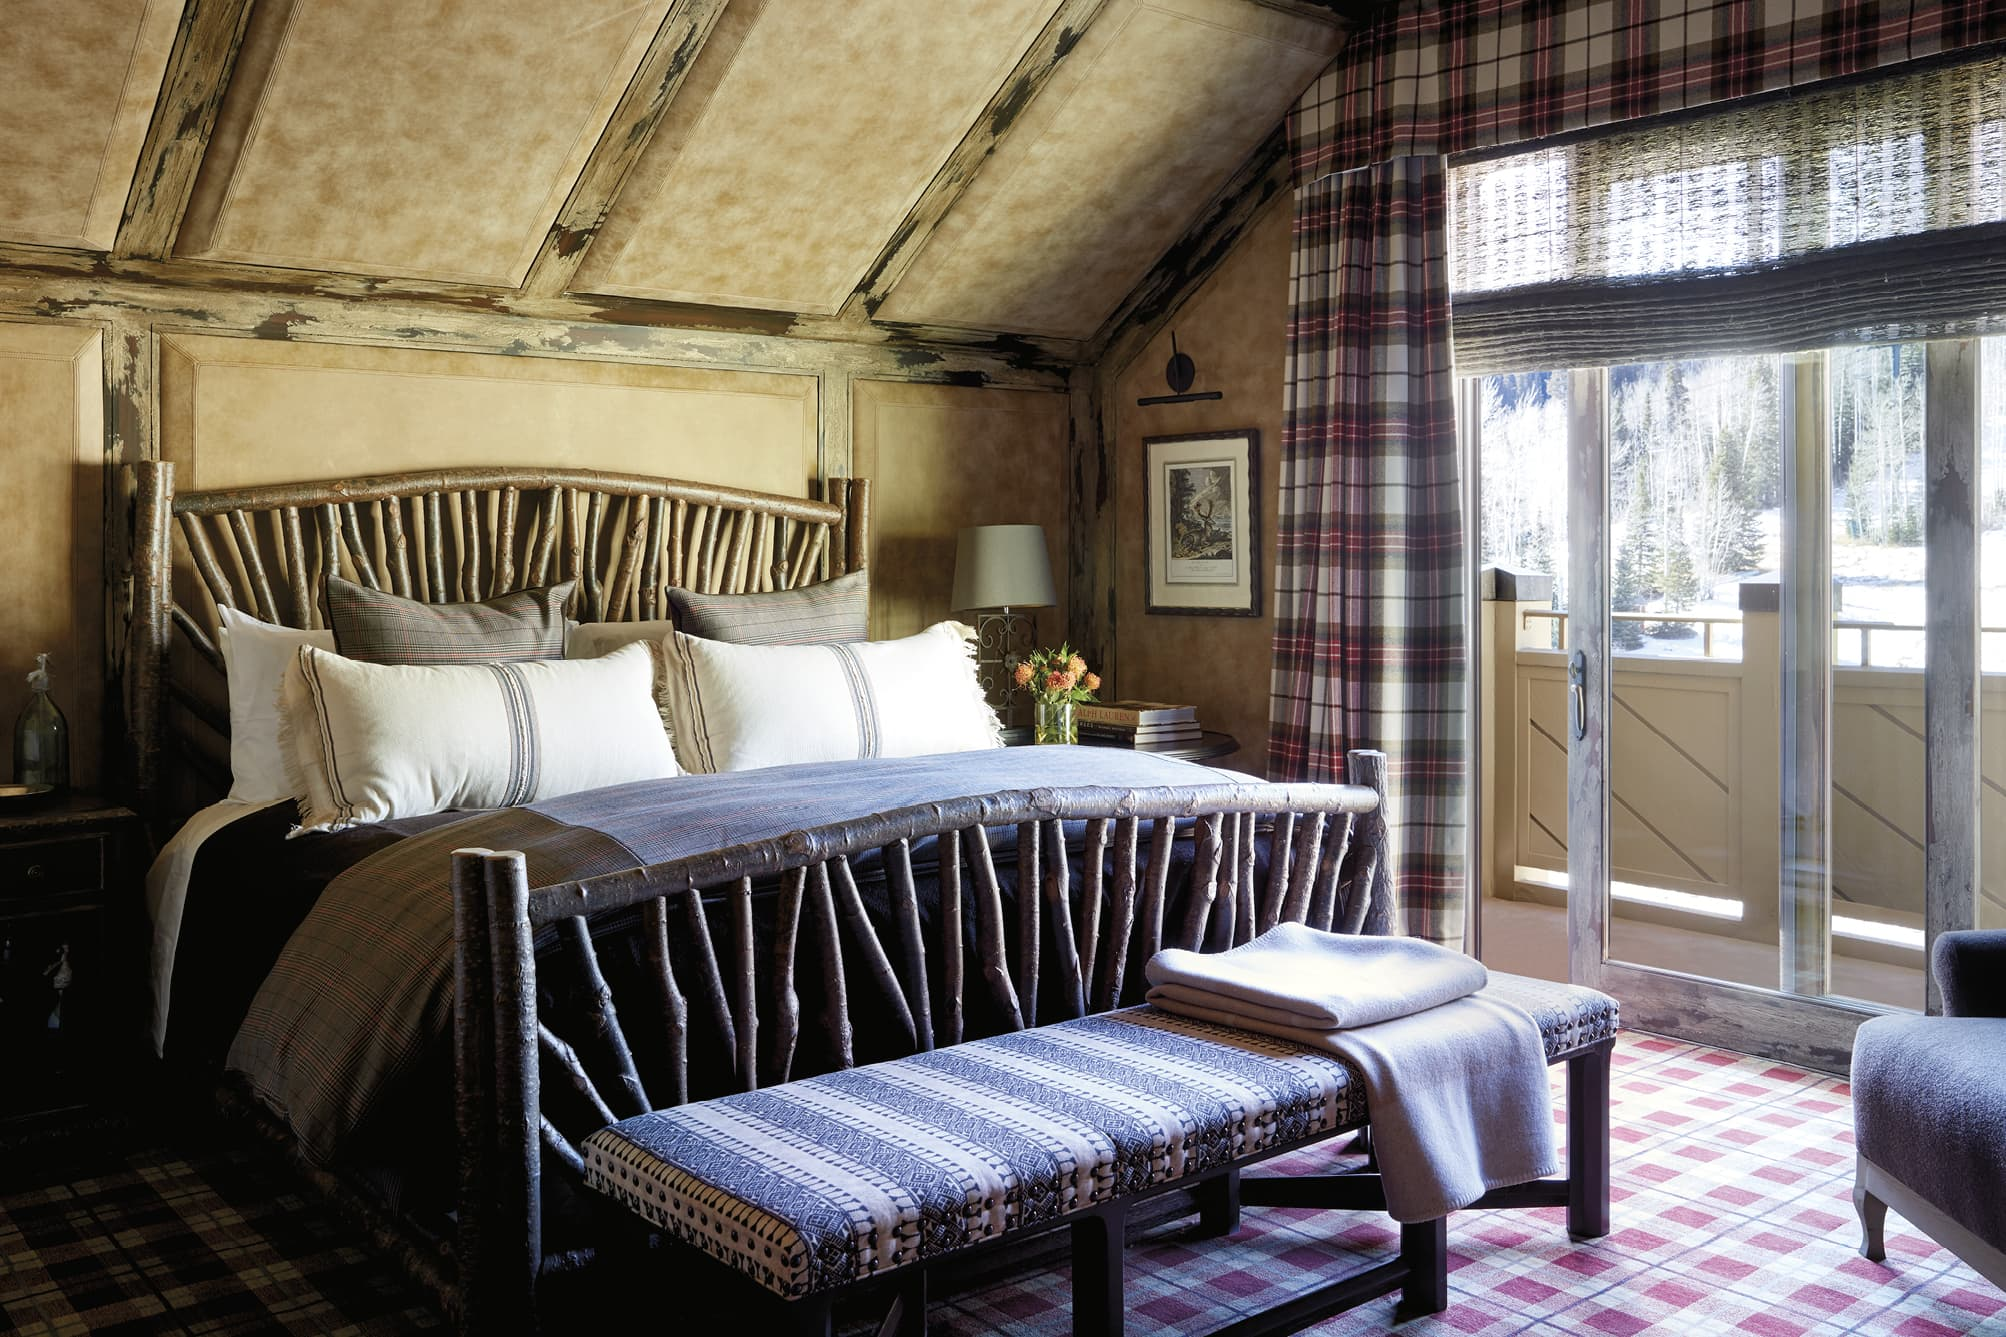 Bedroom with a rustic decor